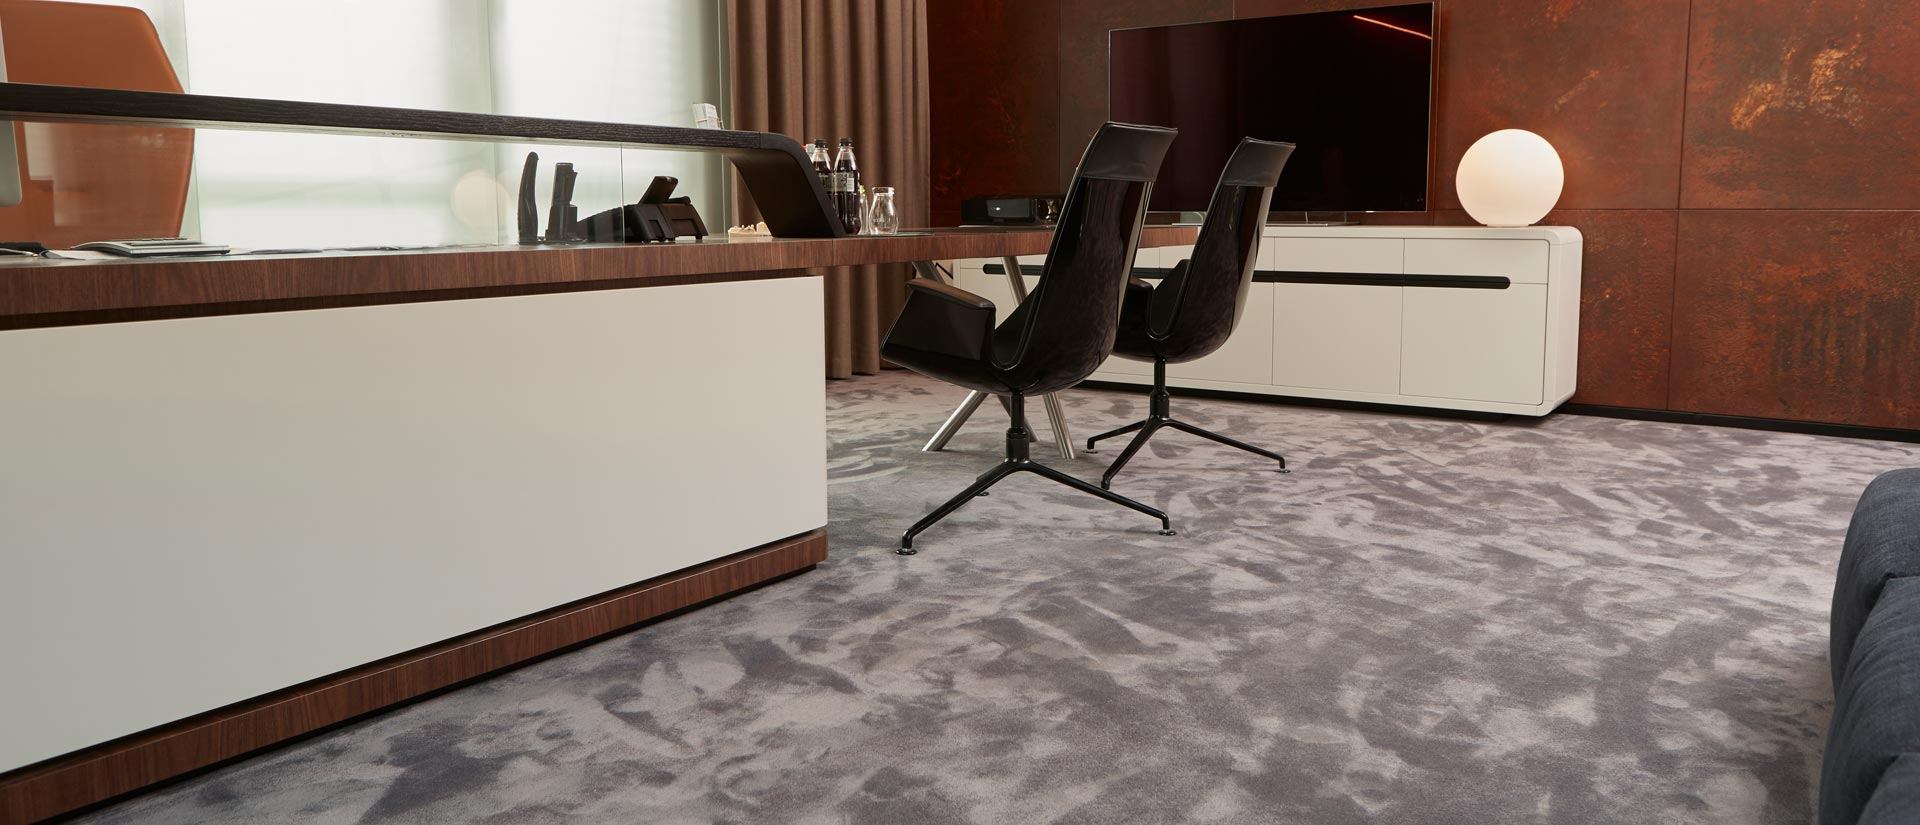 ITC Cannes faux silk carpet available from Flooring 4 You Ltd, luxury flooring specialists in Cheshire